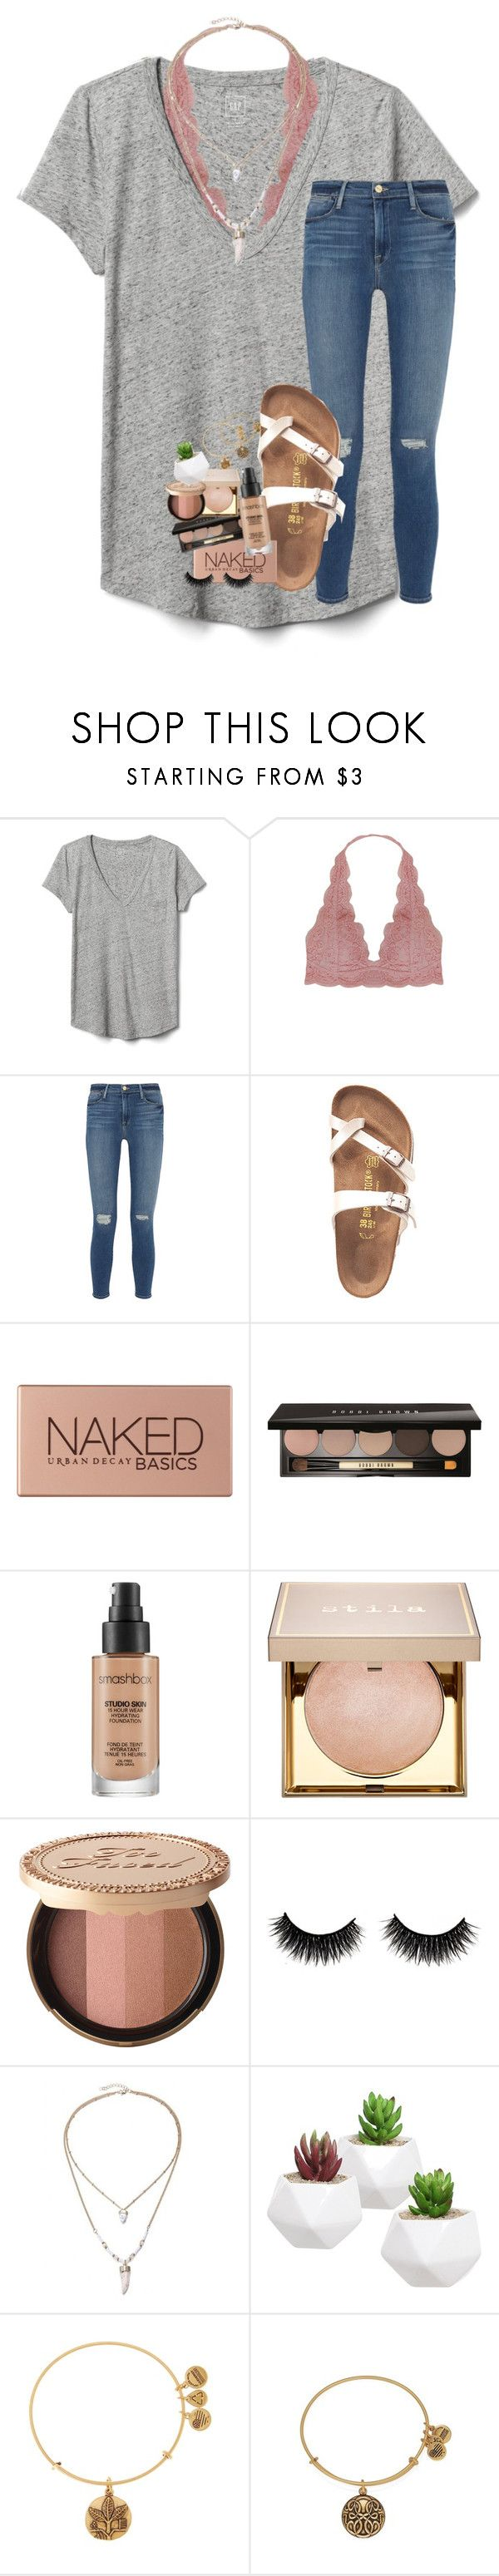 """n e s s u n d o r m a."" by lindsaygreys ❤ liked on Polyvore featuring Gap, Humble Chic, Frame, Birkenstock, Urban Decay, Bobbi Brown Cosmetics, Smashbox, Stila, Too Faced Cosmetics and Alex and Ani"